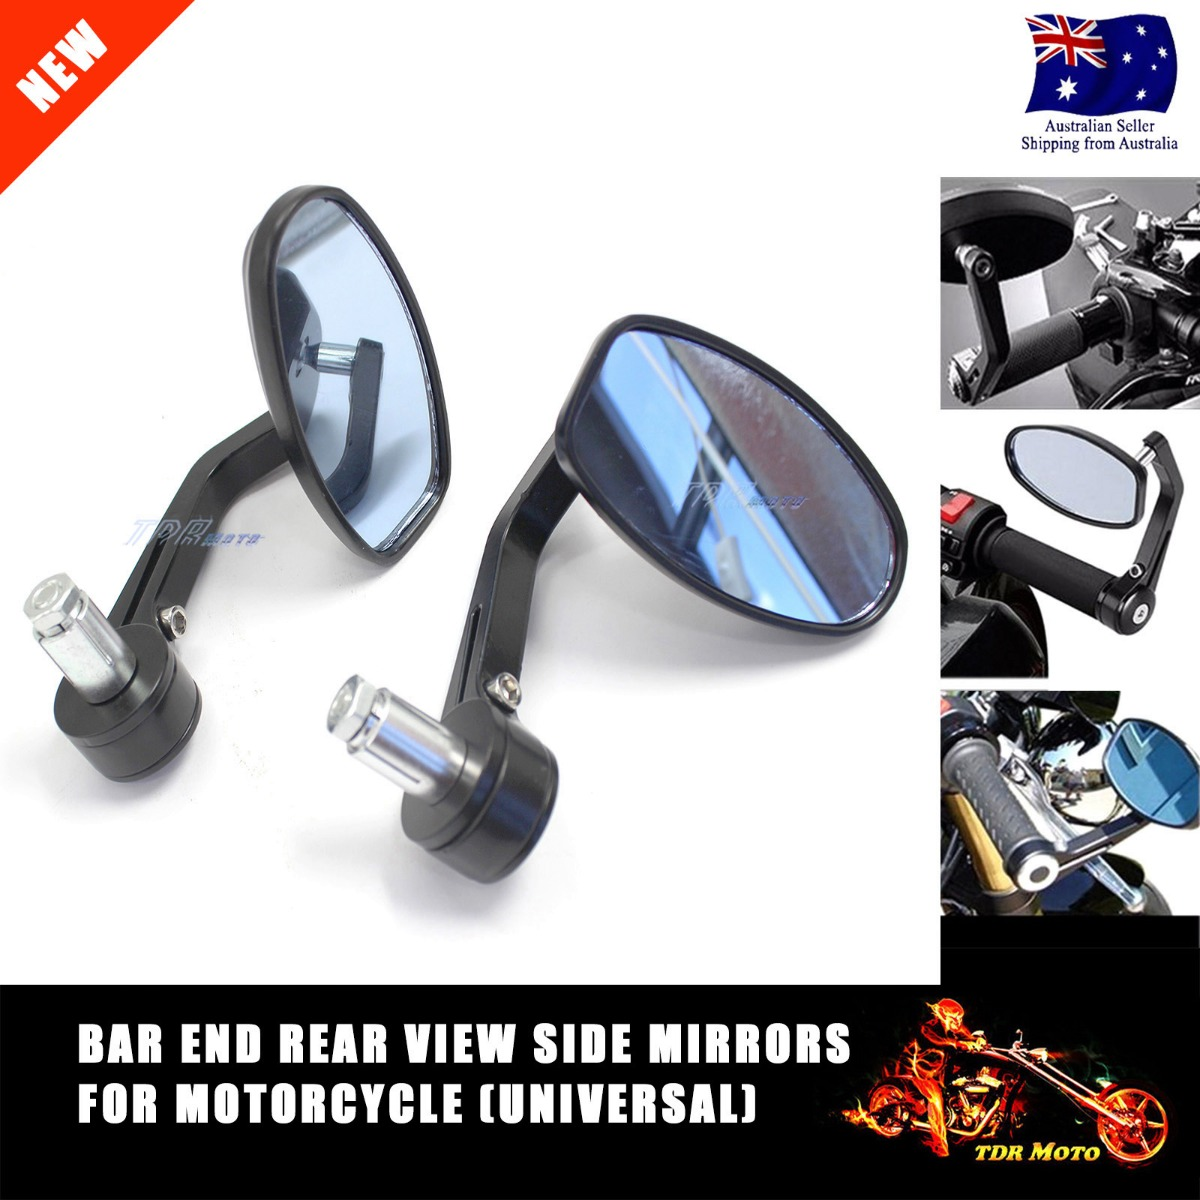 Bar End Rear View Side Mirrors Motorcycle Alumi Alloy